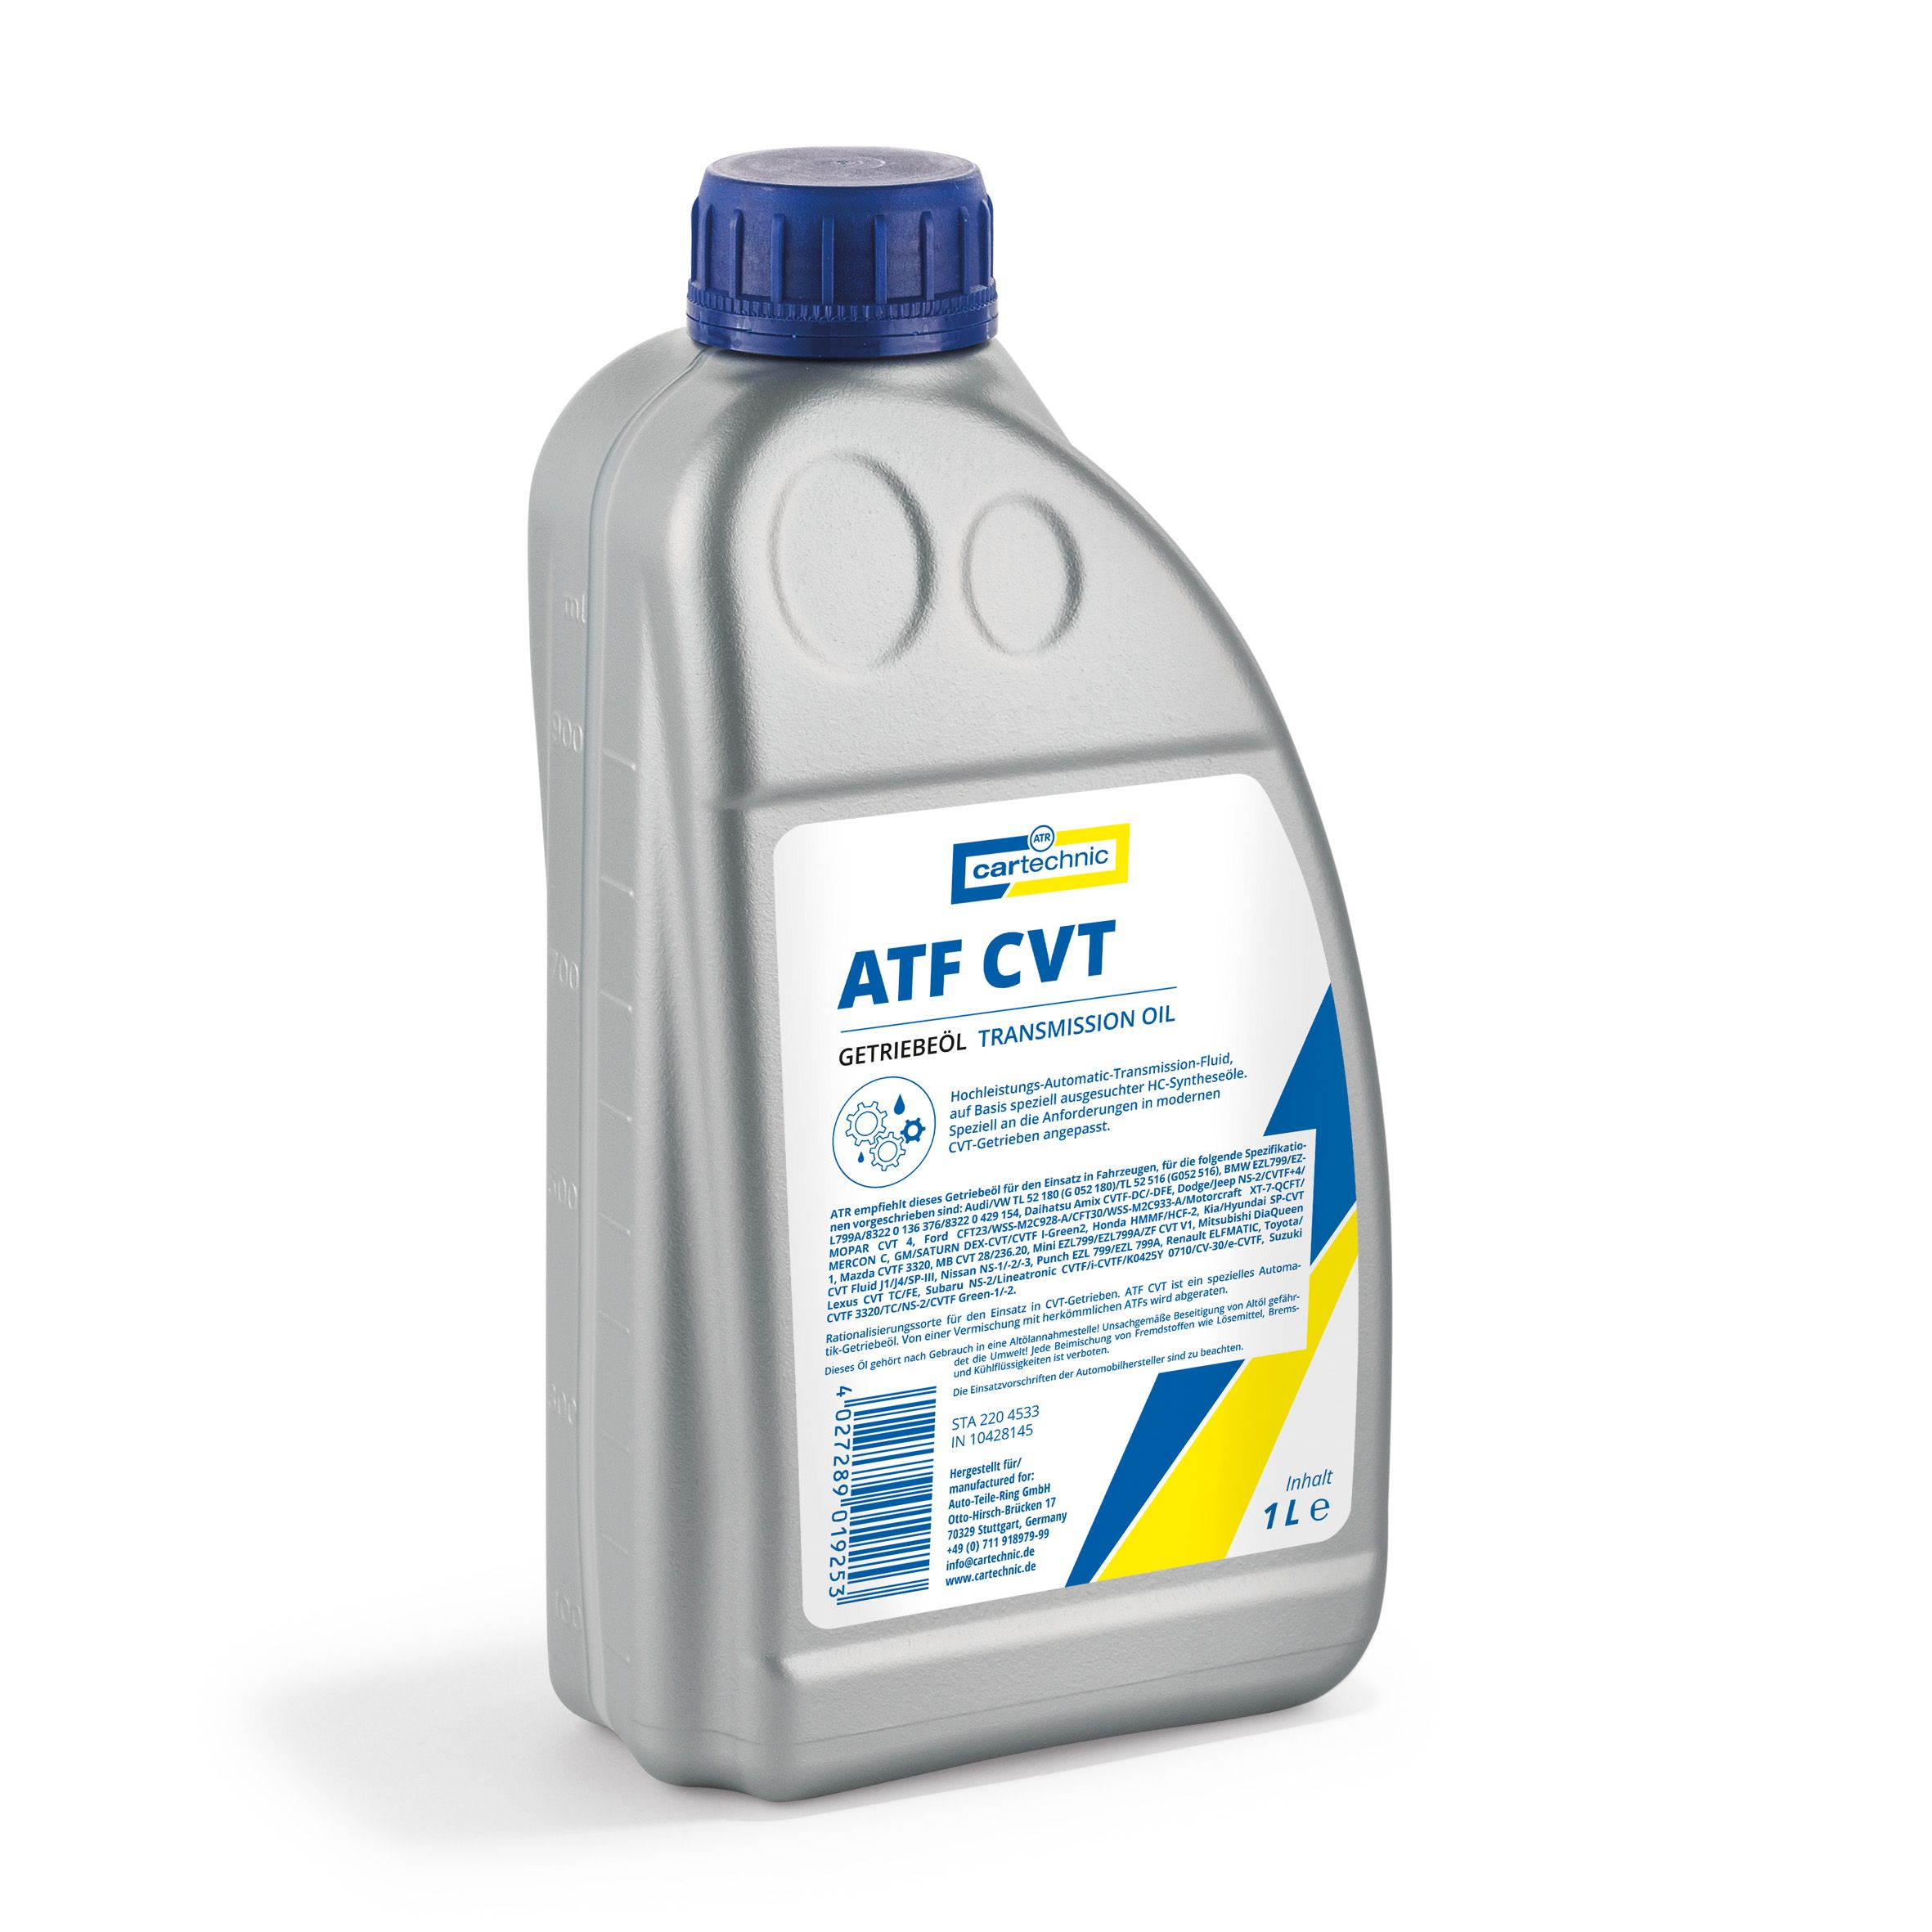 CARTECHRO Transmission oil ATF CVT 1 liter 25055-114-J2